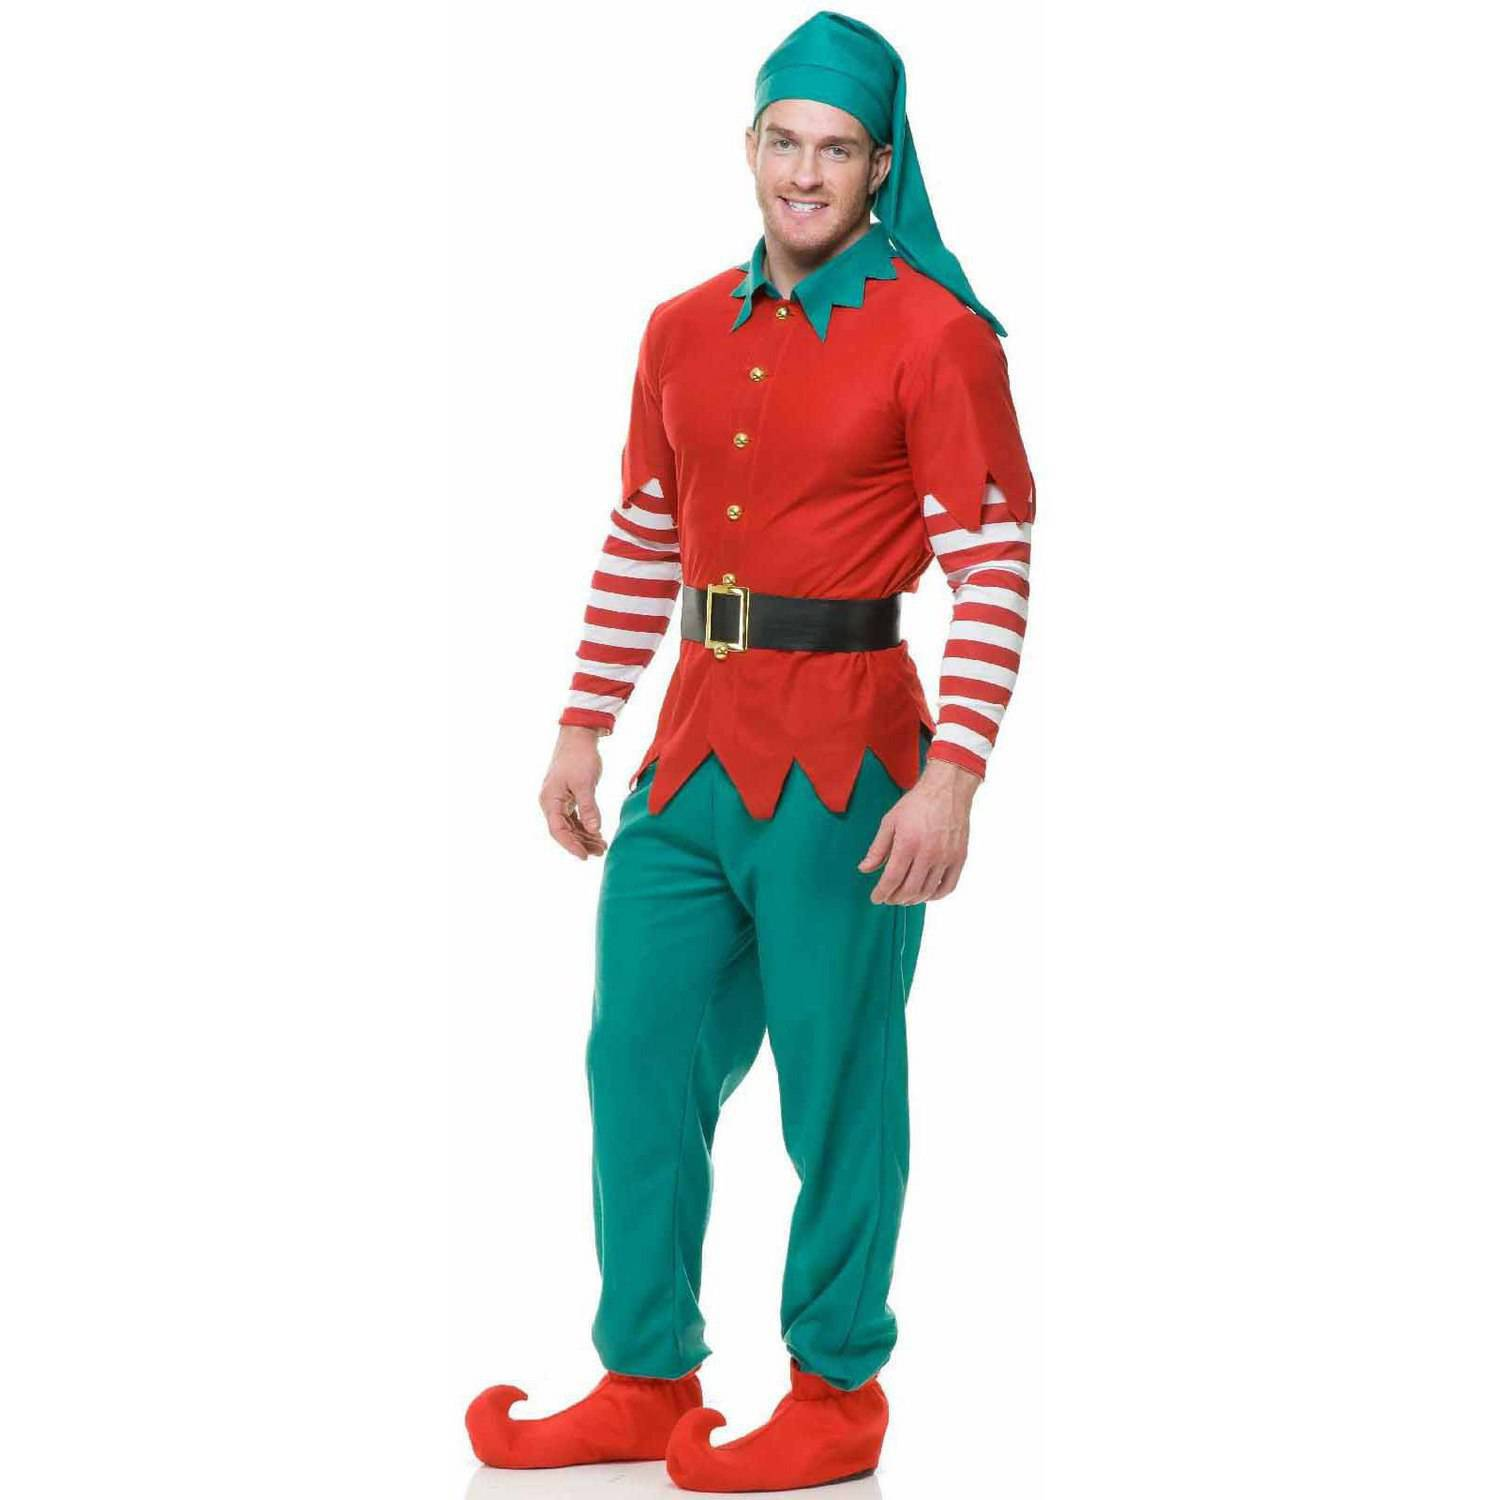 Santau0027s Helper Elf Womenu0027s Adult Christmas Costume One Size 8-14 - Walmart.com  sc 1 st  Walmart & Santau0027s Helper Elf Womenu0027s Adult Christmas Costume One Size 8-14 ...